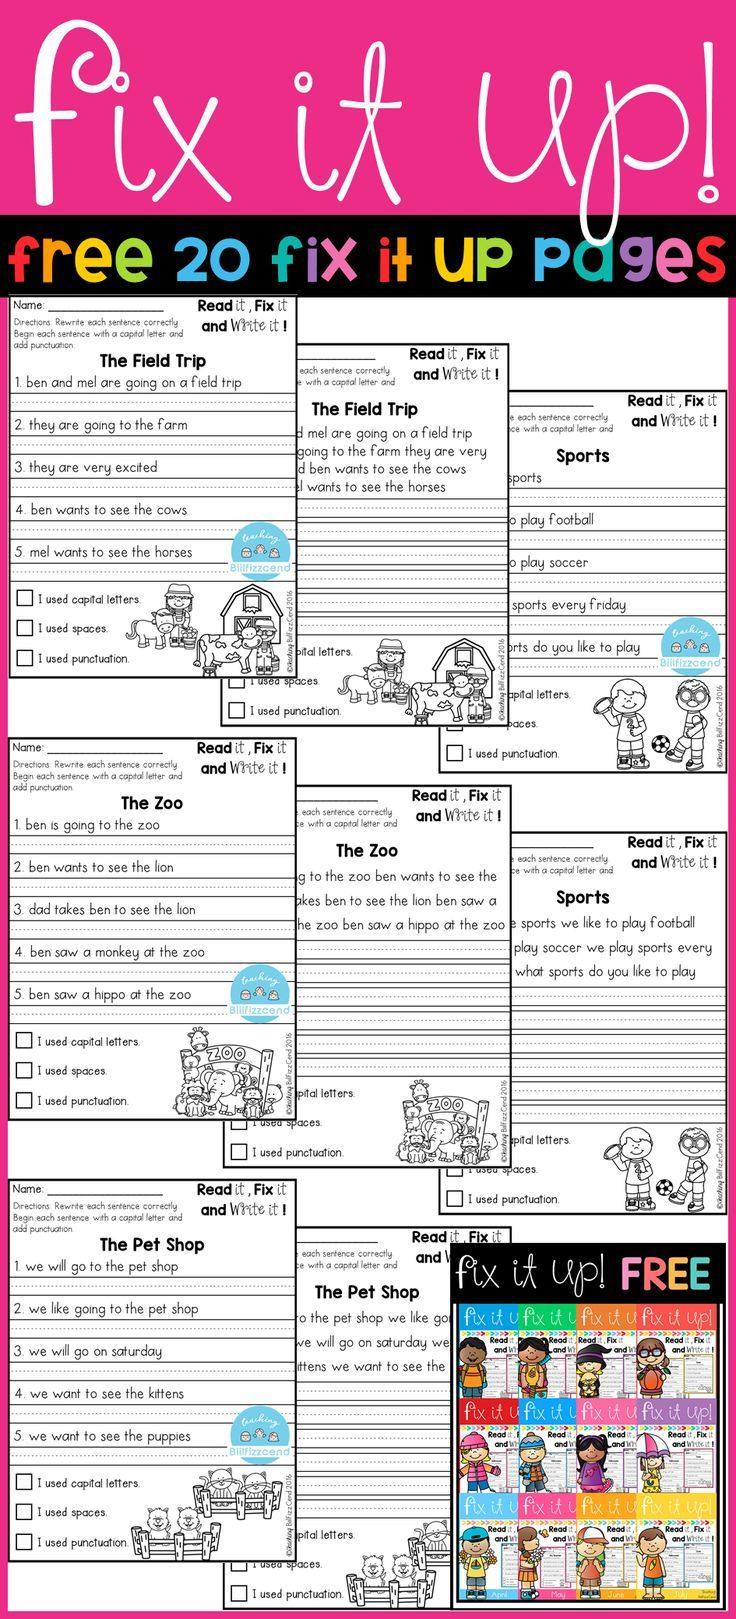 Money Worksheets Year 2 Free  Fix It Up Pages These Are Great For Students In  Adding And Subtracting Decimals Worksheets 4th Grade Pdf with Number Story Worksheets Pdf These Are Great For Students In Kindergarten First Kindergarten  Freebieskindergarten Writingreading Fluencyfirst Grade  Averaging Worksheets Excel